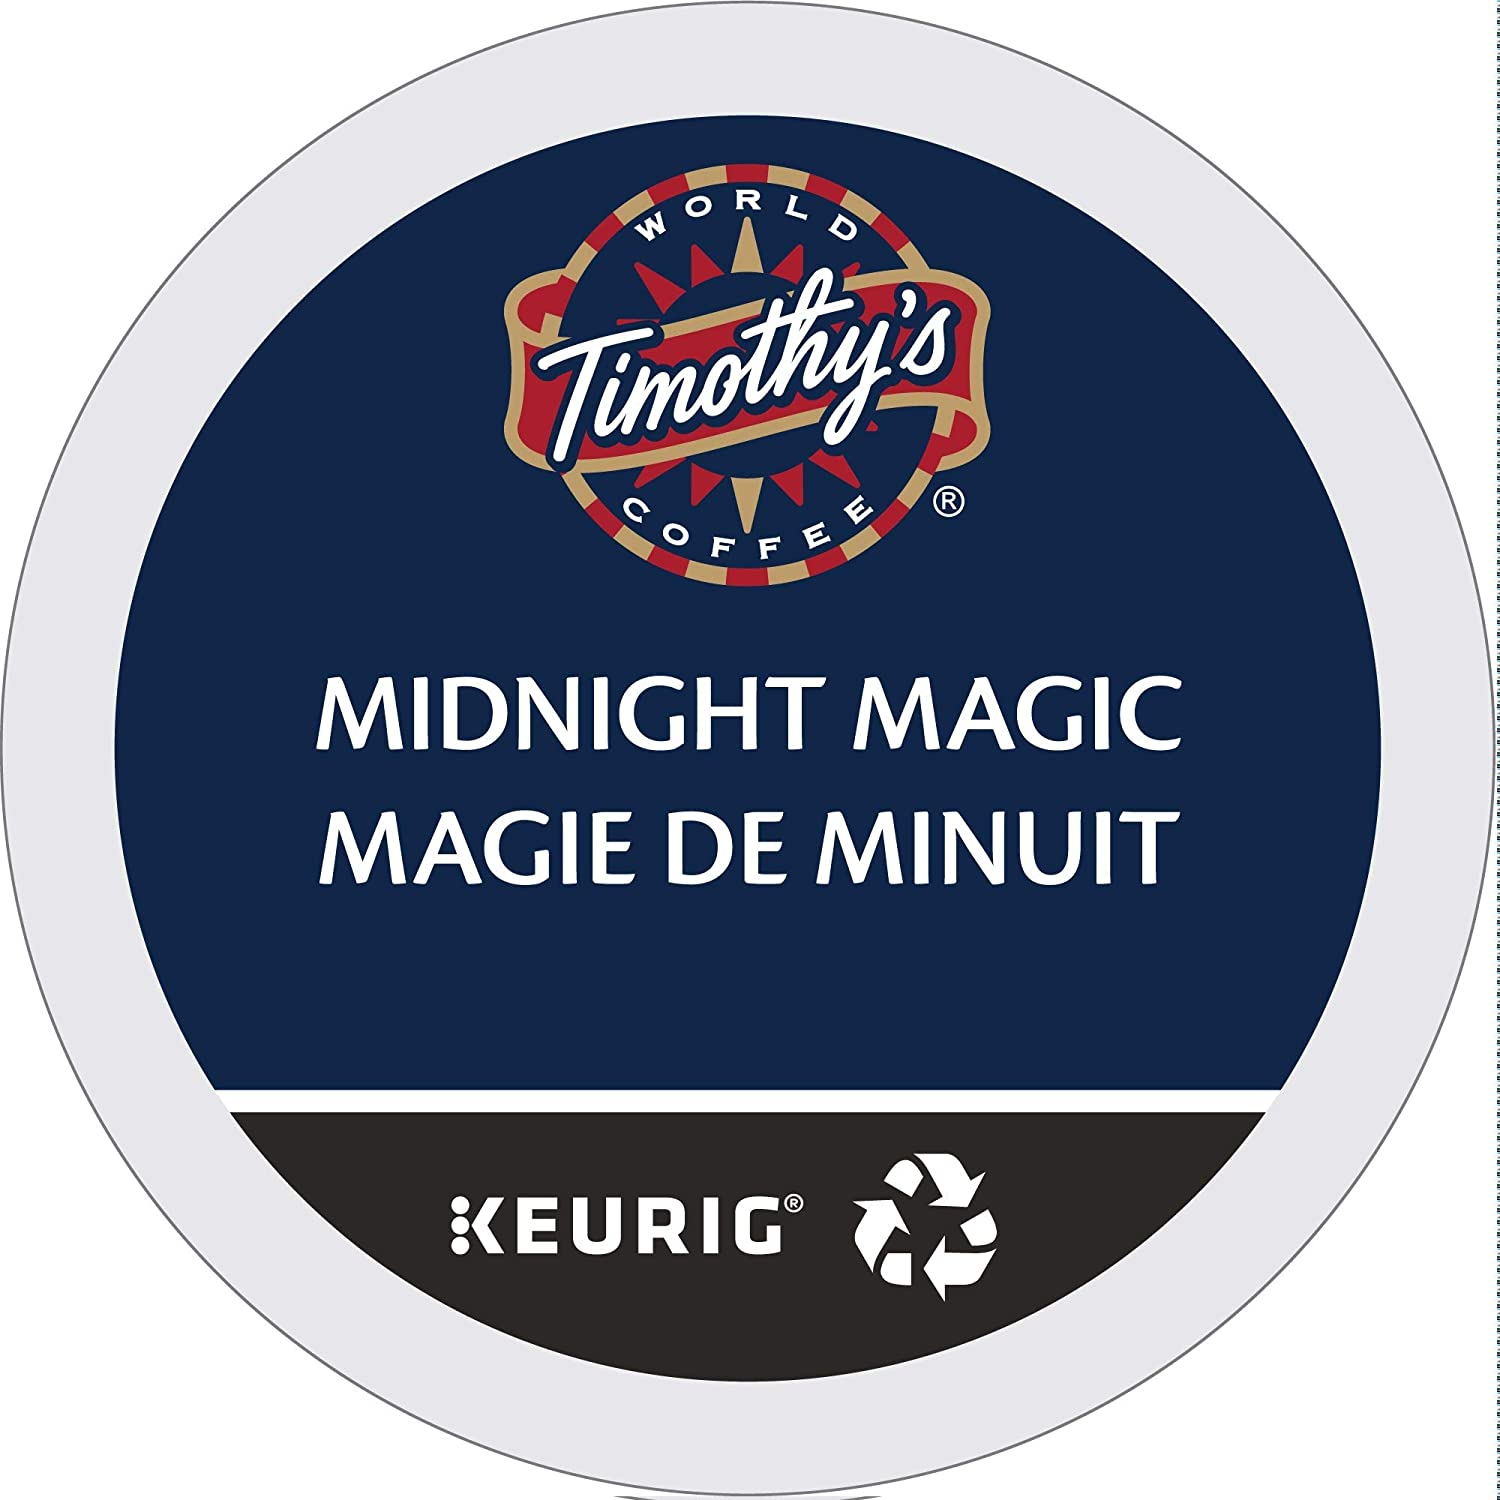 Timothy's World Coffee, Midnight Magic,  KCup Portion Pack for Keurig KCup Brewers 24Count  (Pack of 2)